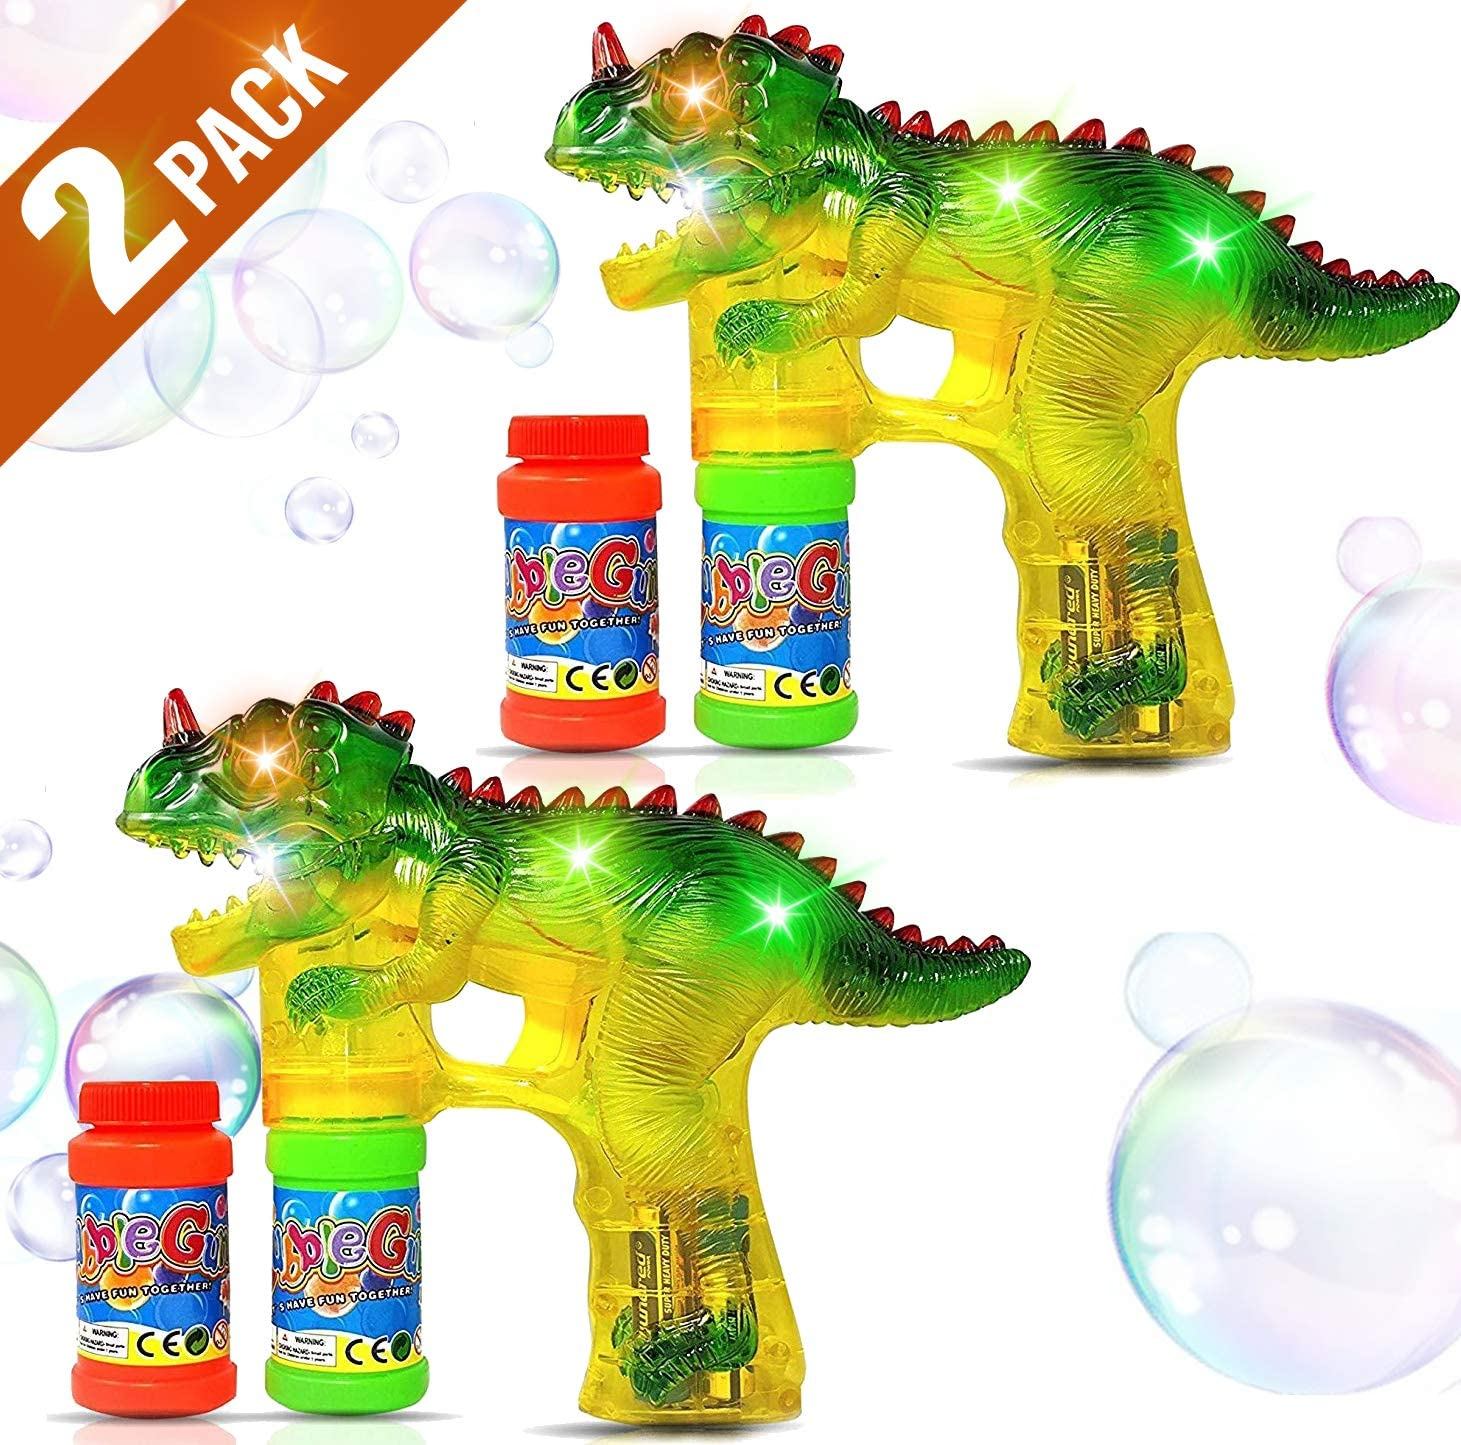 Haktoys Dinosaur Bubble Gun with LED Flashing Lights 2 Bubble Shooters, 4 Bottles Bubble Refill Solution and Batteries Included | Parent Friendly - Sound Free